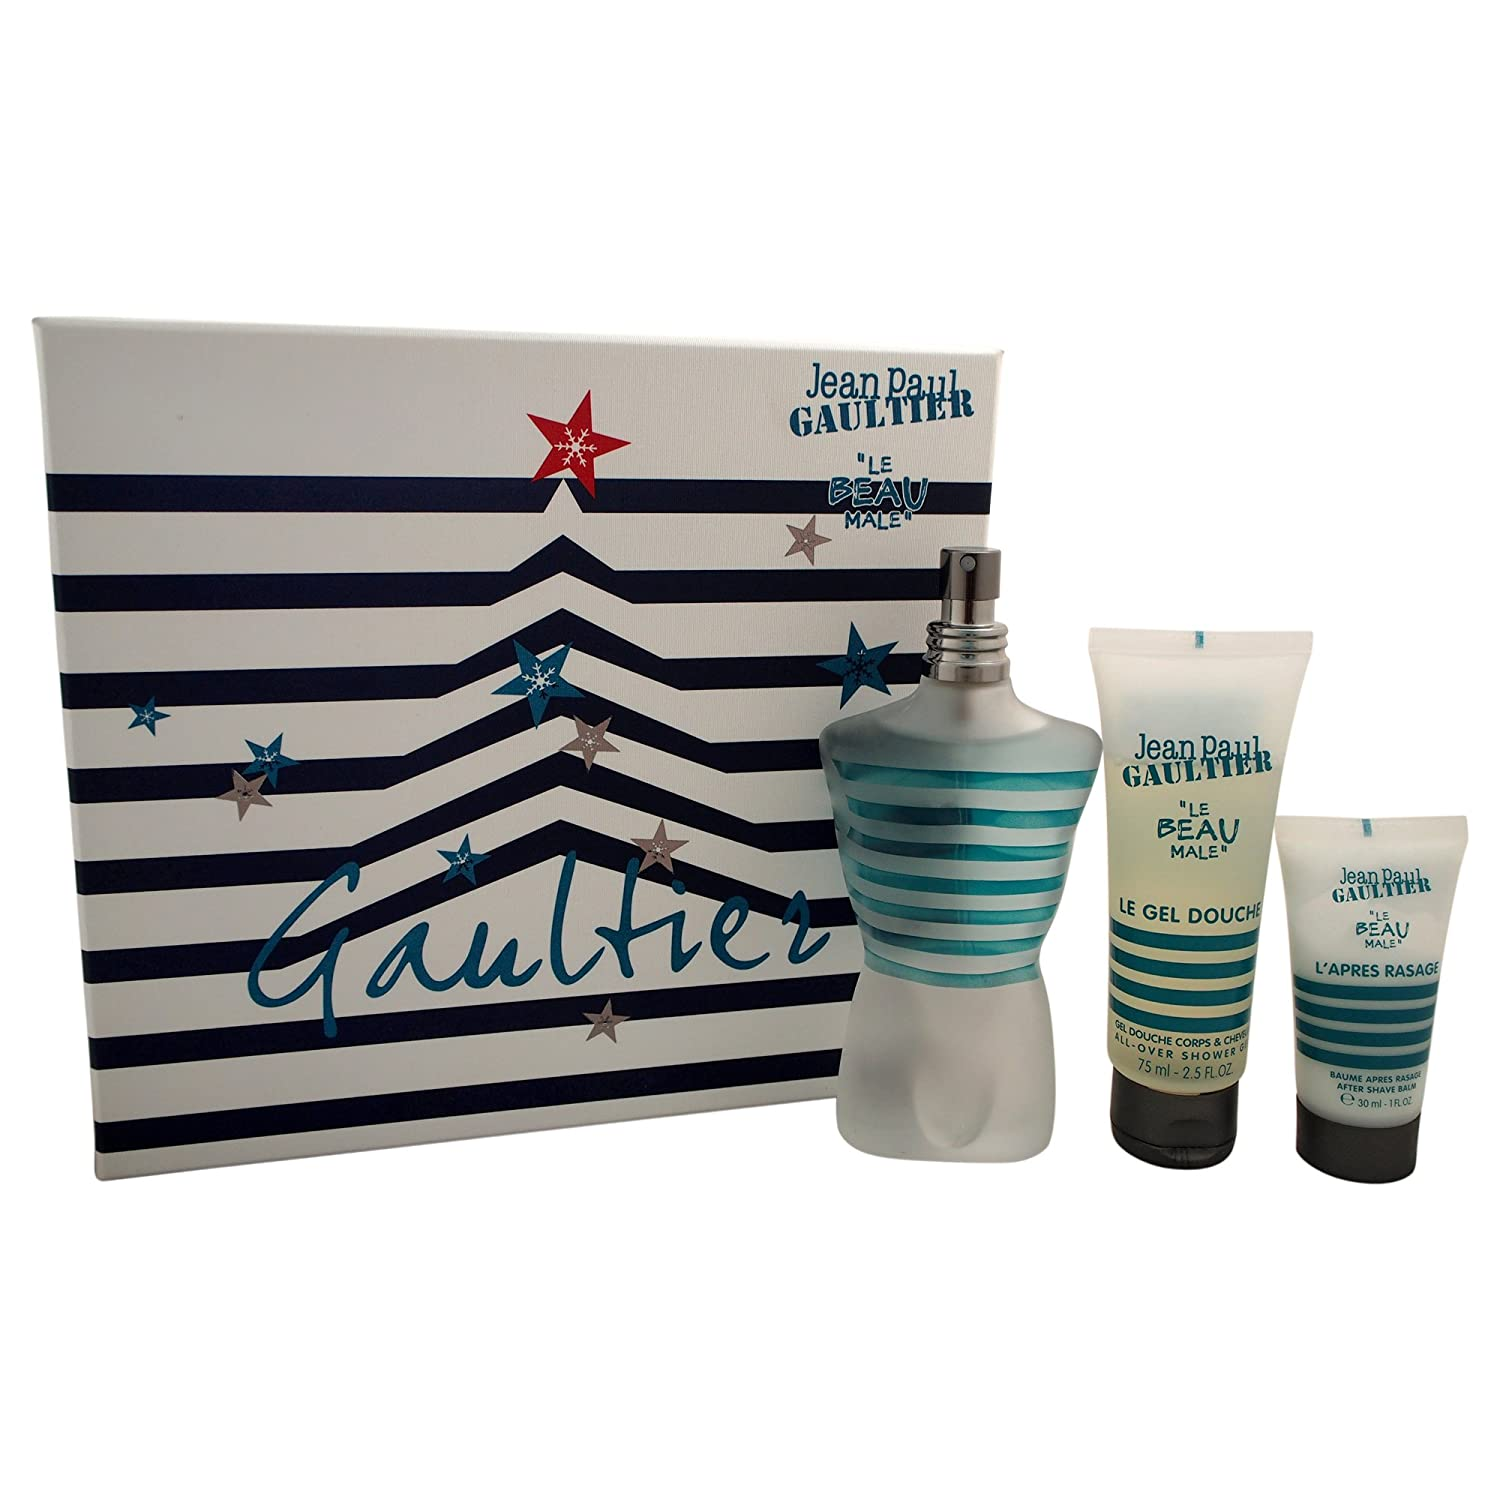 Jean Paul Gaultier Le Beau Male for Men-3 Pc Gift Set 4.2-Ounce EDT Fraicheur Intense Spray, 2.5-Ounce Shower Gel, 1-Ounce After Shave Balm 90595